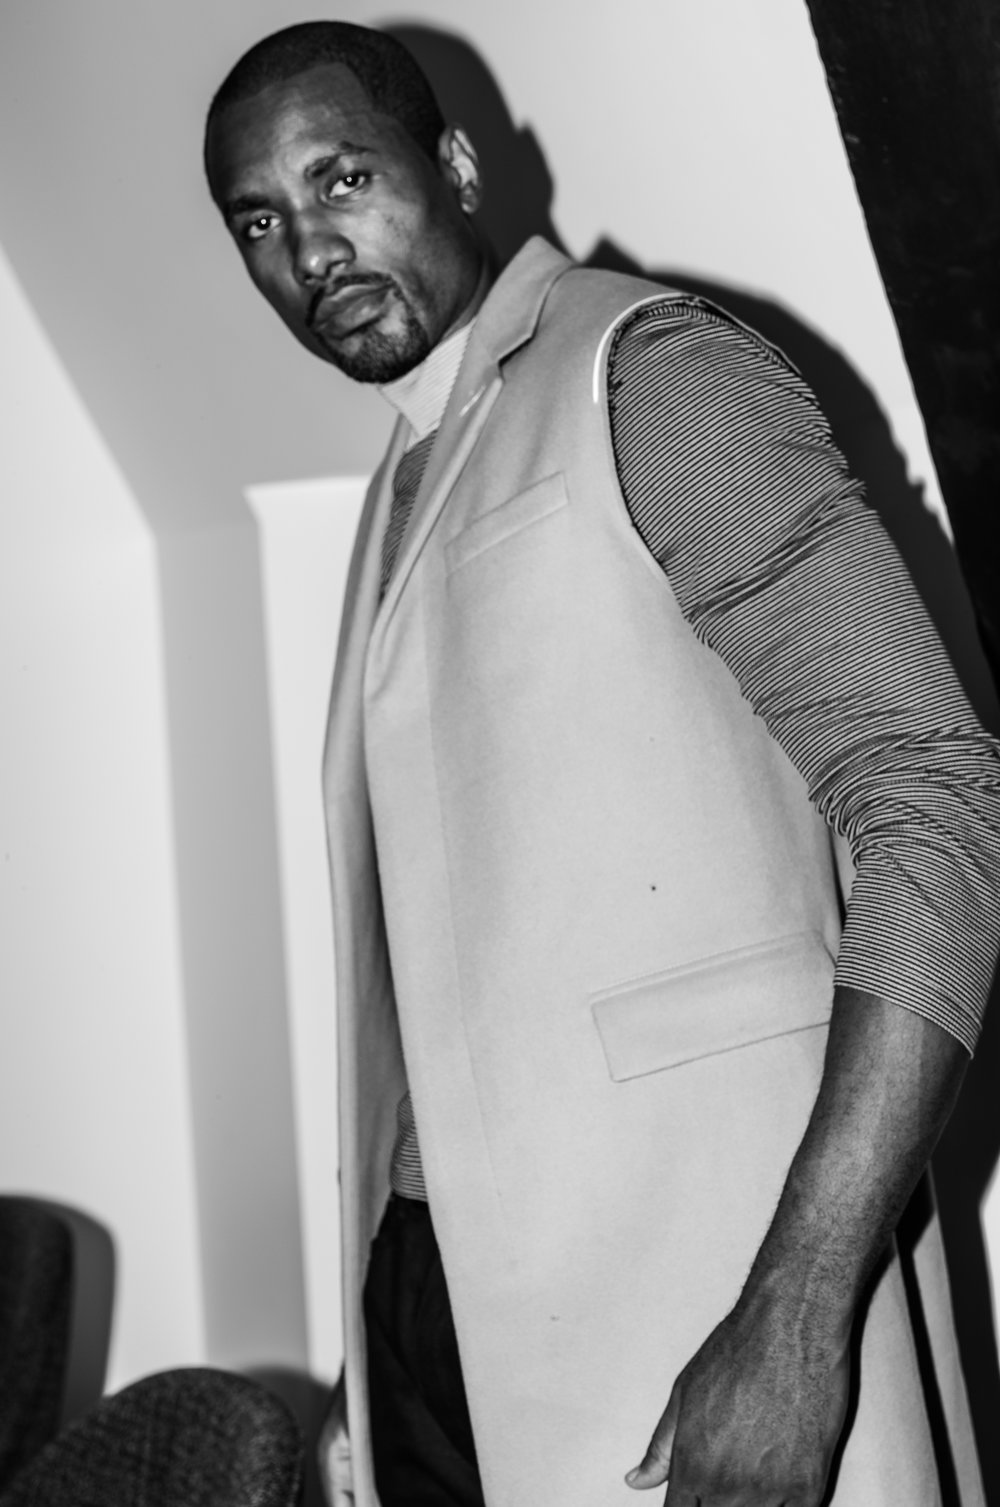 Serge Ibaka | all images by Bil Brown | FASHION CREDITS: Vest by DIOR HOMME, Sweater by SALVATORE FERRAGAMO, and Serge's own jeans